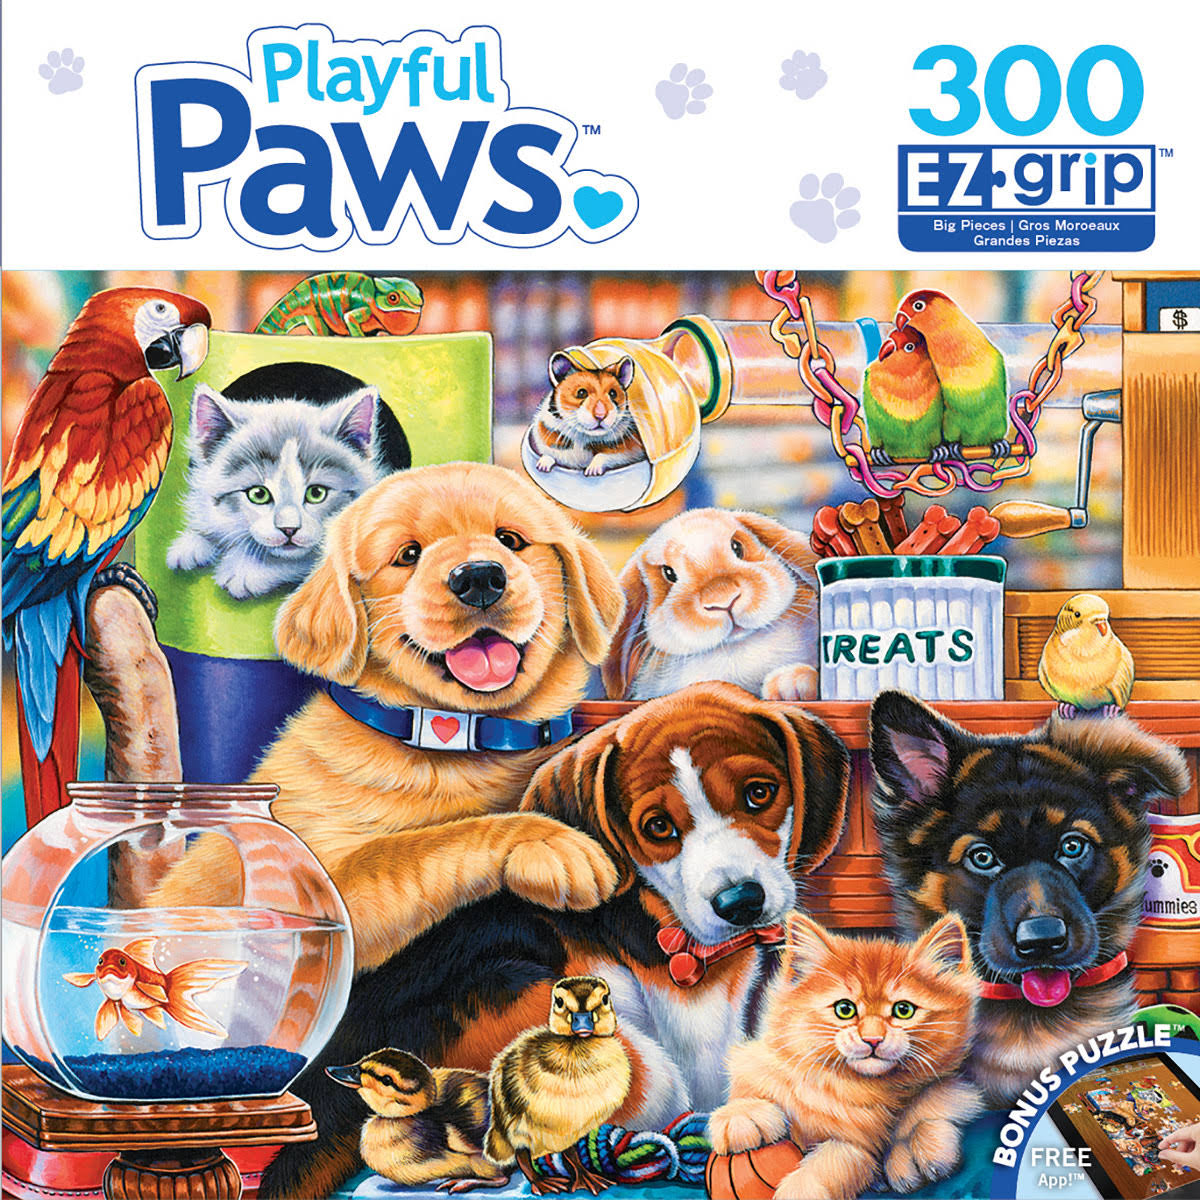 Master Piece Puzzle Home Wanted Playful Paws Ez Grip Puzzle - 300pcs